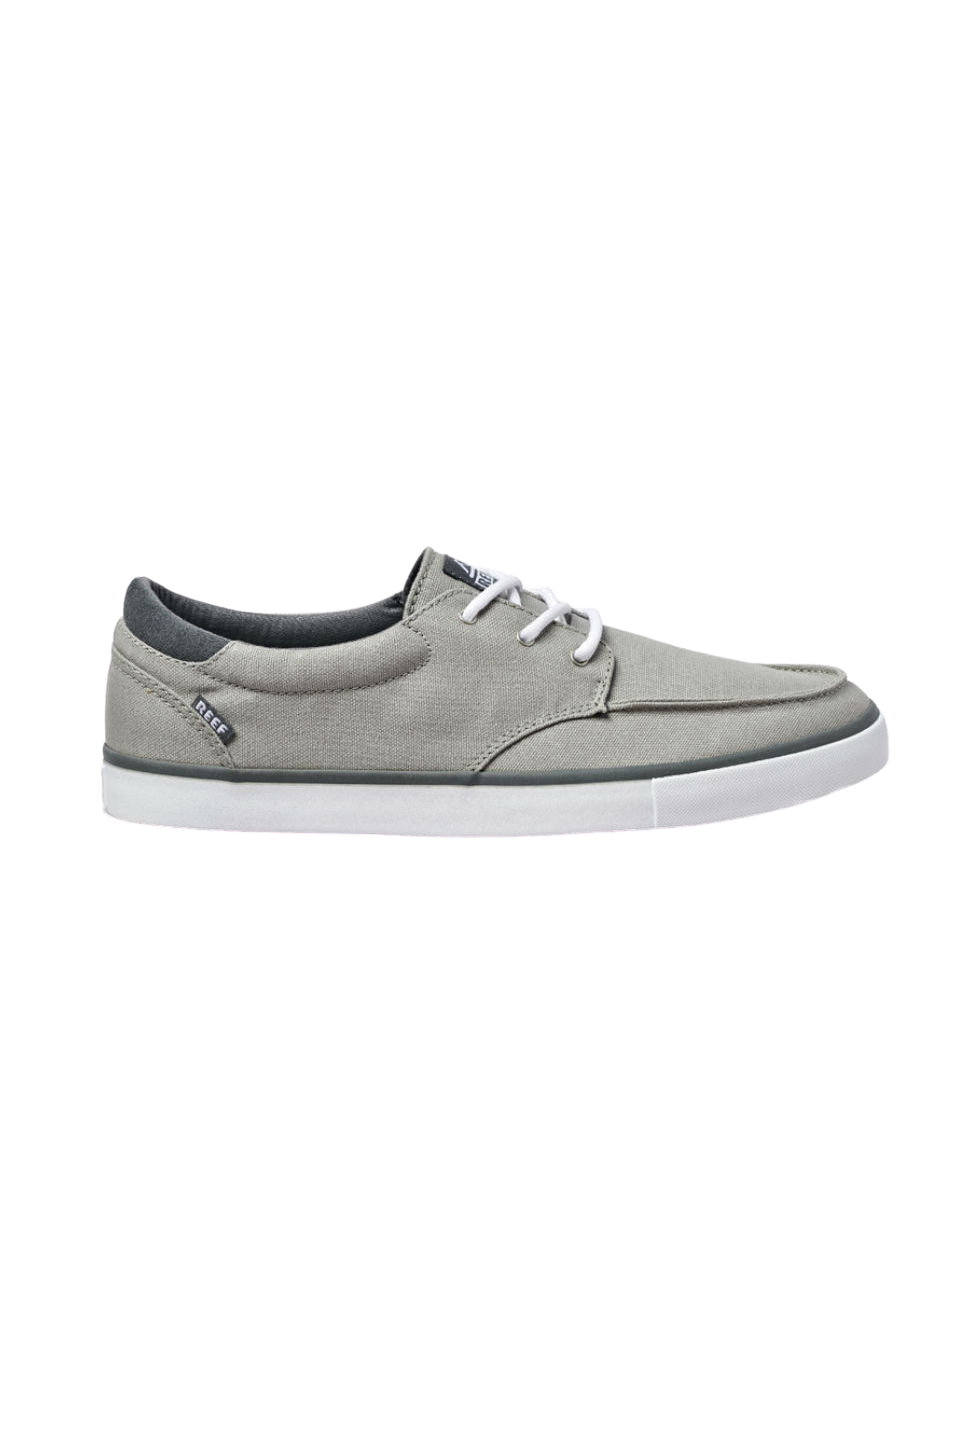 Reef - Deckhand 3 - Grey/White - Side